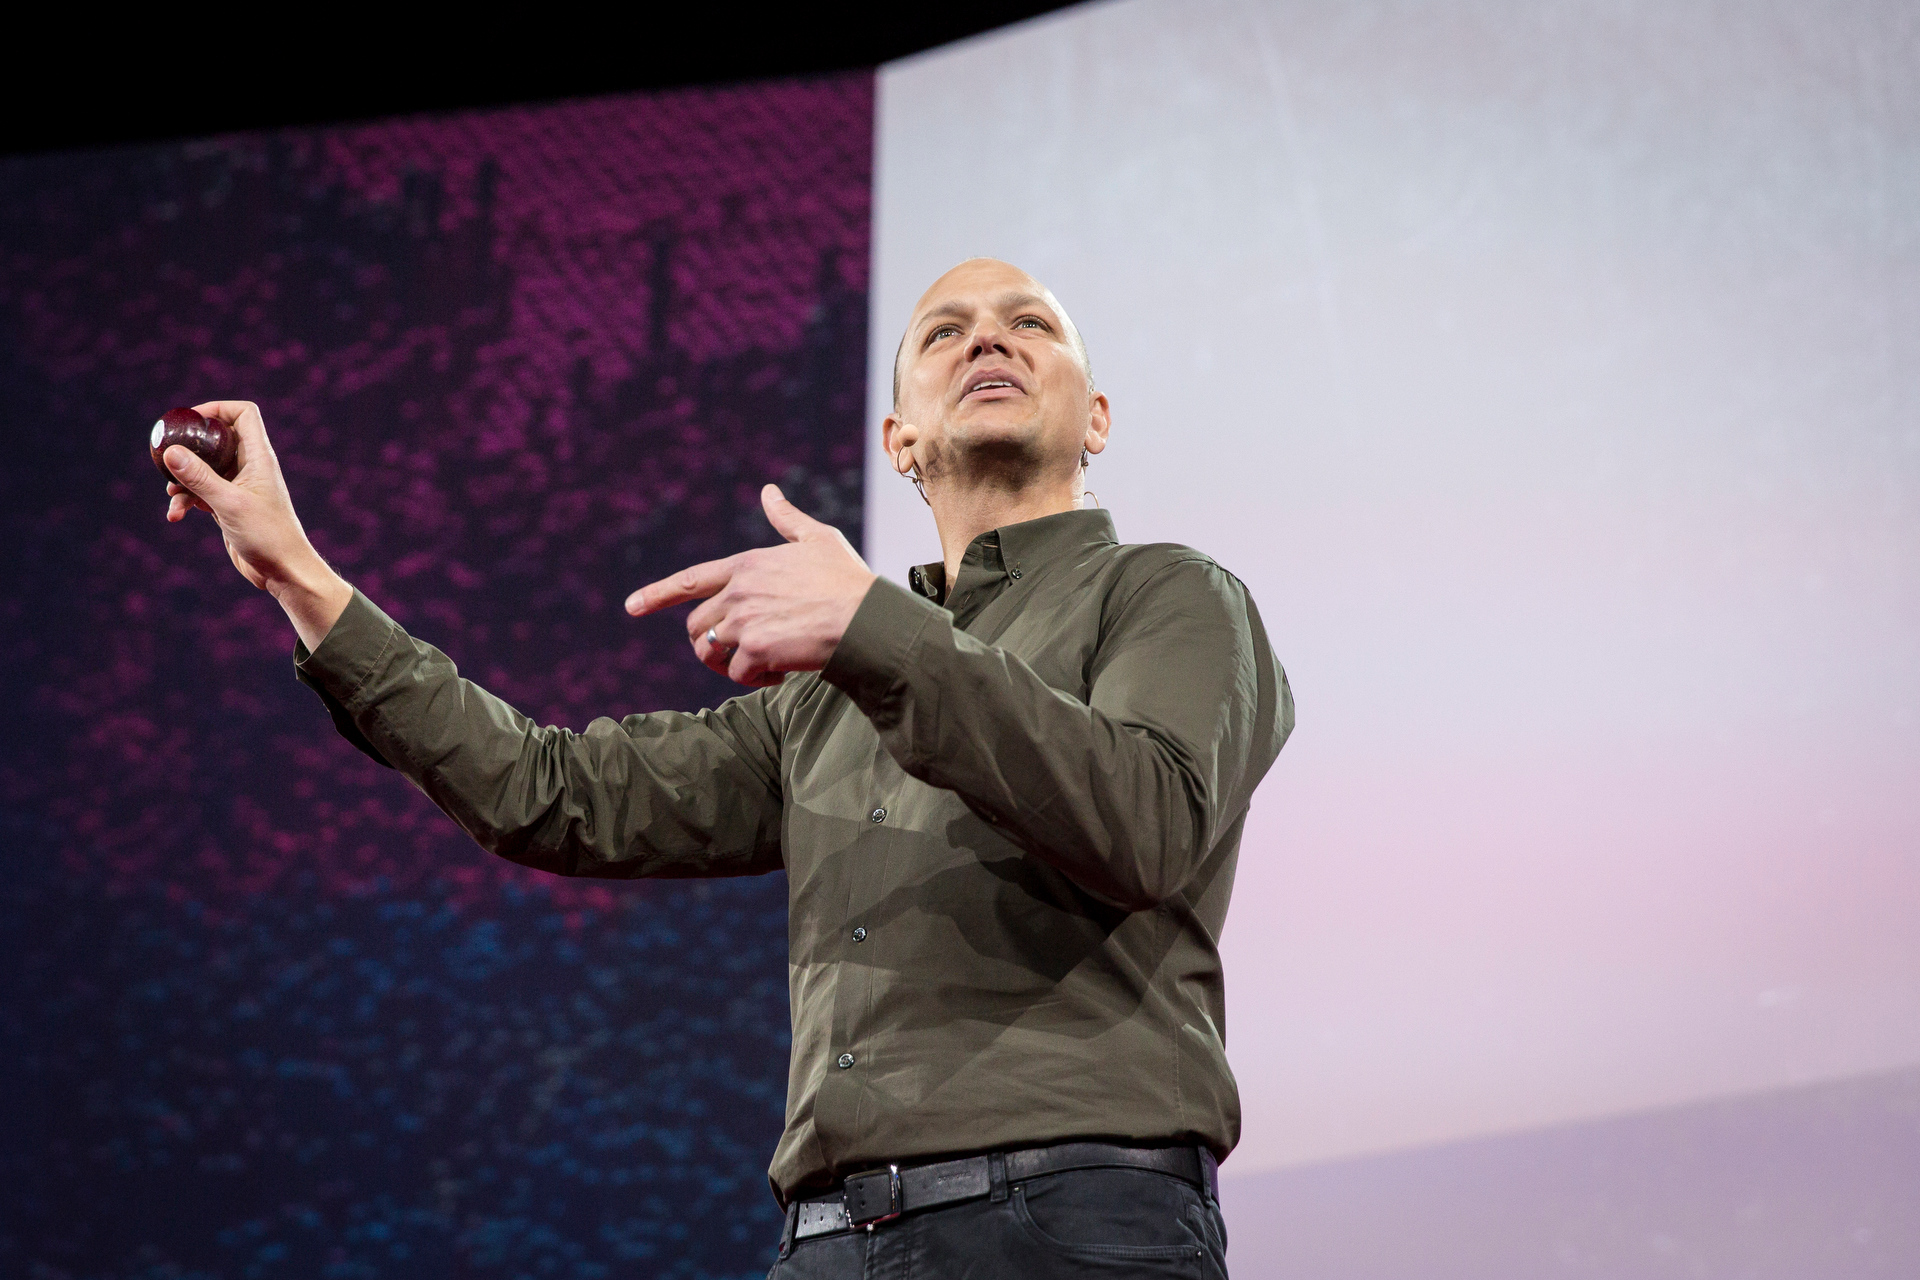 Tony Fadell speaks at TED2015 - Truth and Dare, Session 7. Photo: Bret Hartman/TED